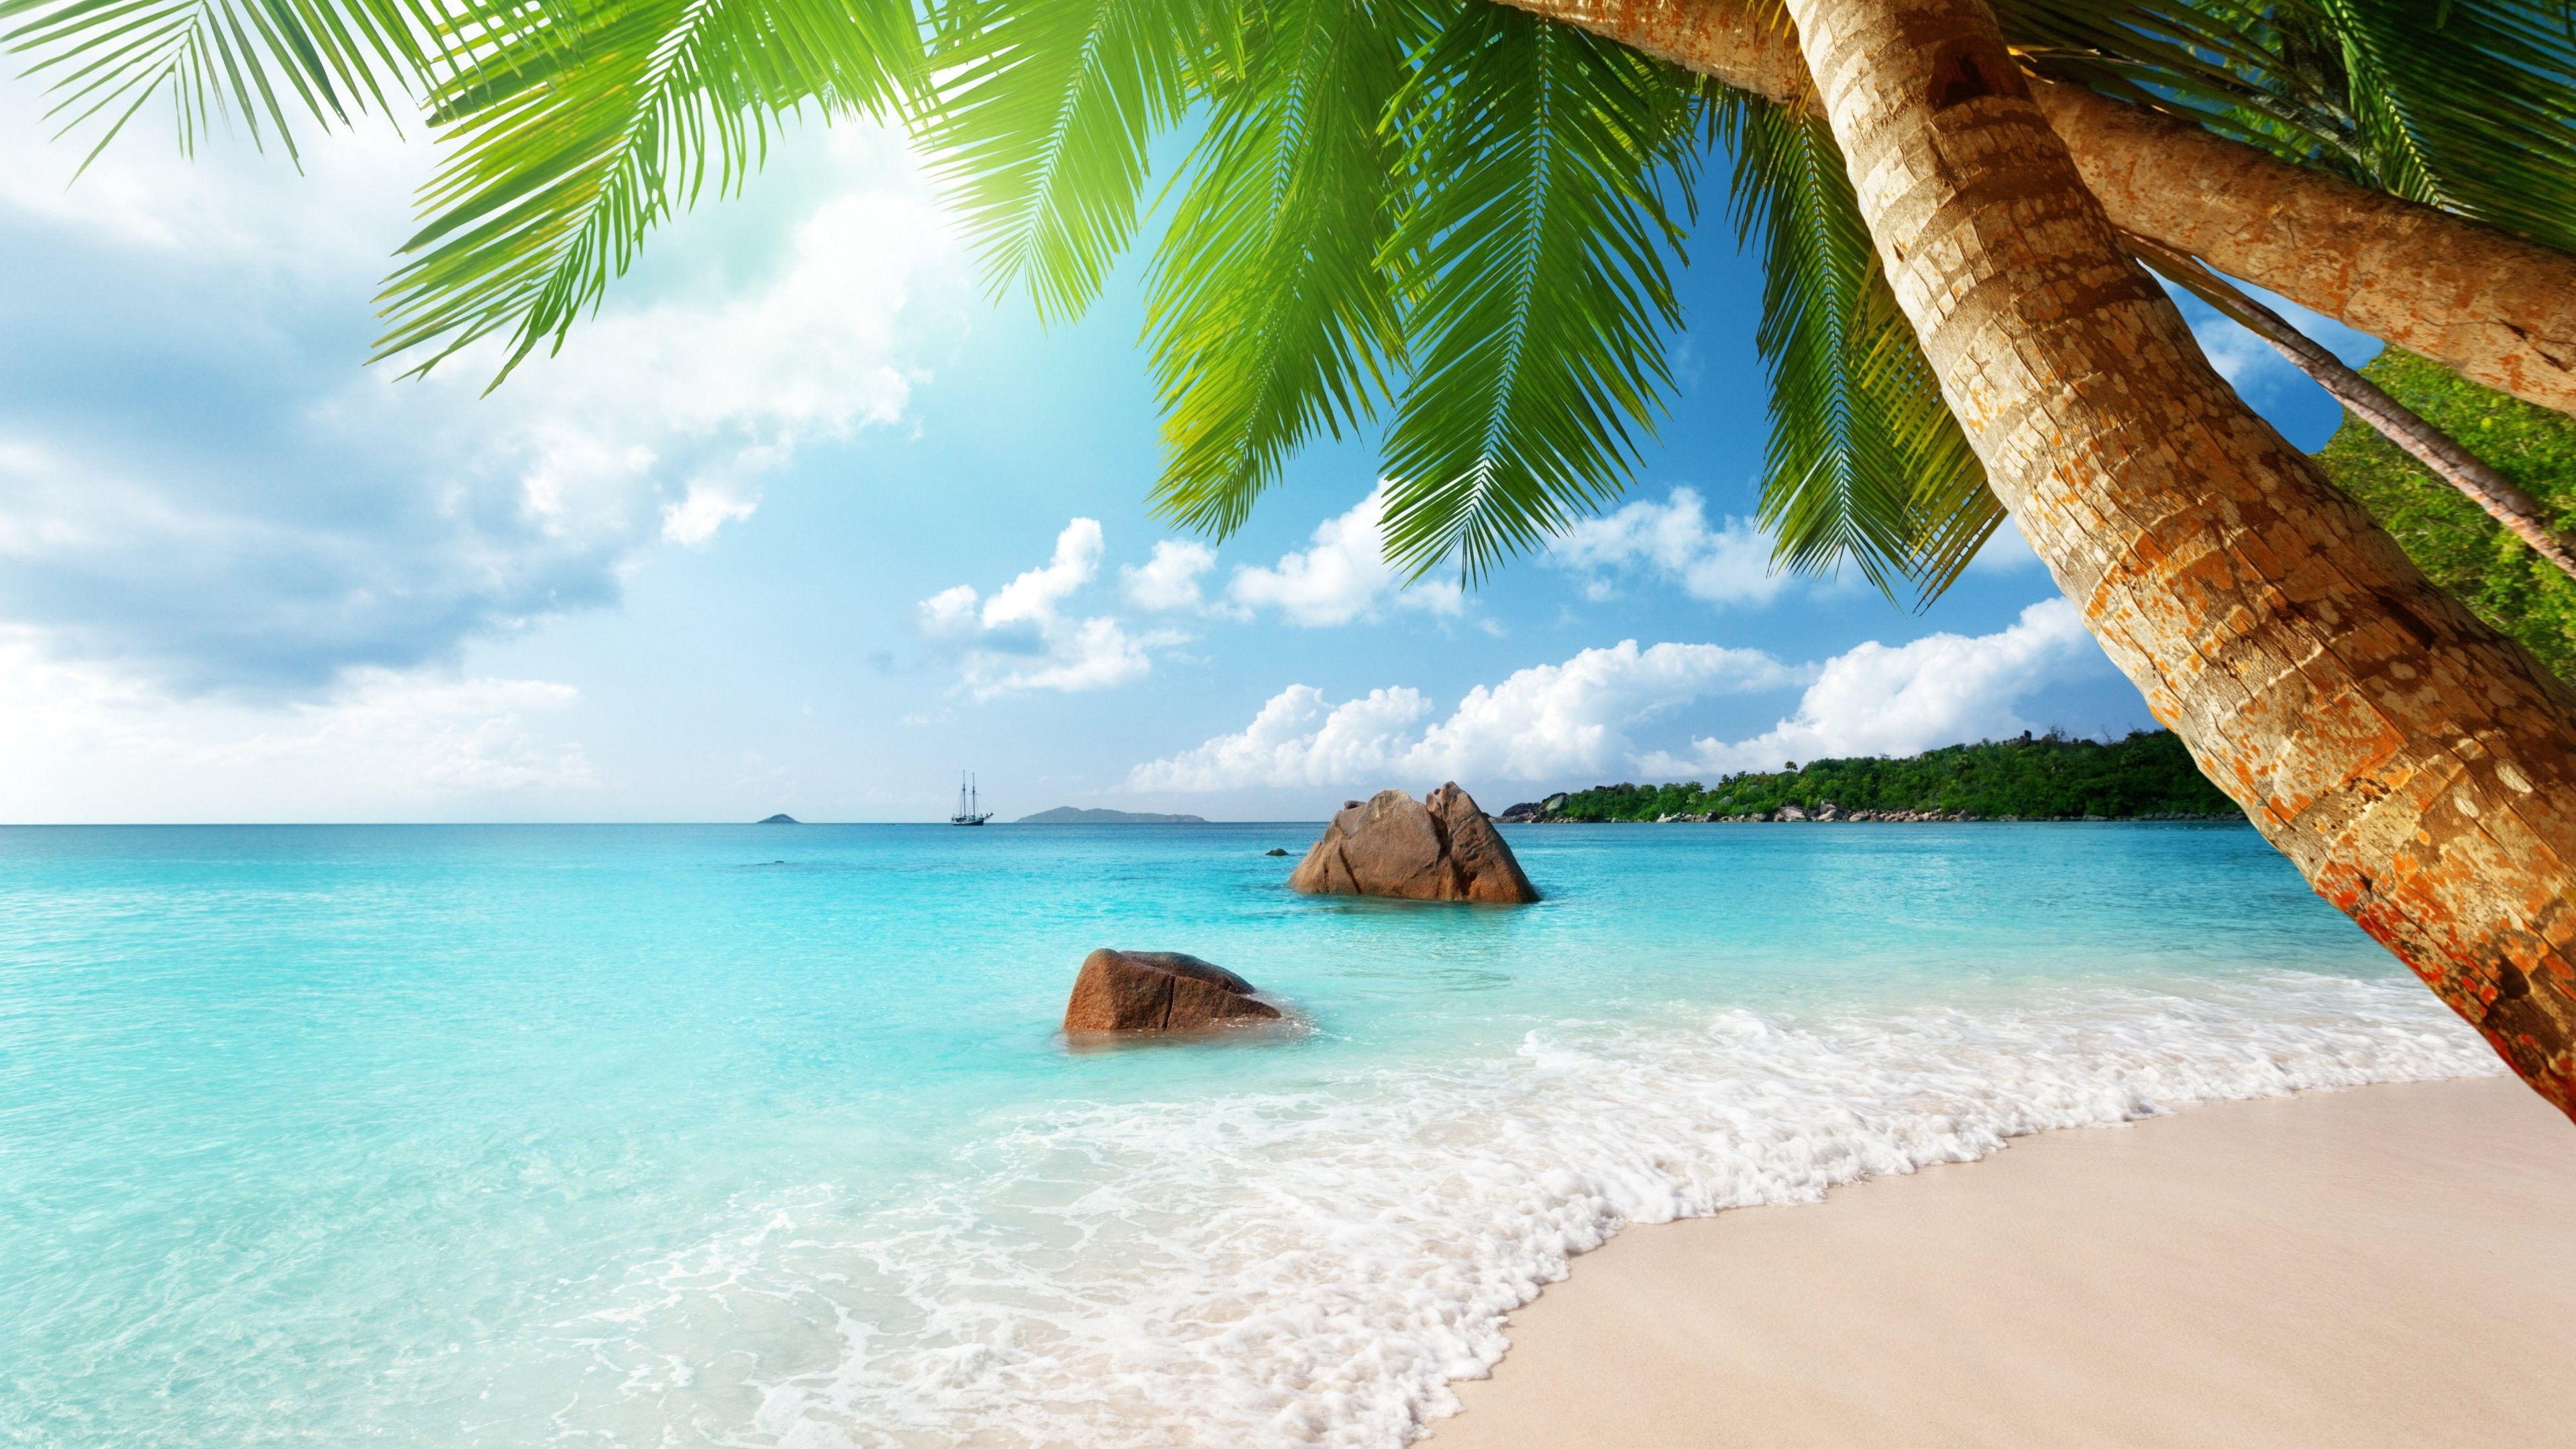 Hd Tropical Island Beach Paradise Wallpapers And Backgrounds: Wallpaper Beach, 5k, 4k Wallpaper, Palm. Ocean, Nature #7037